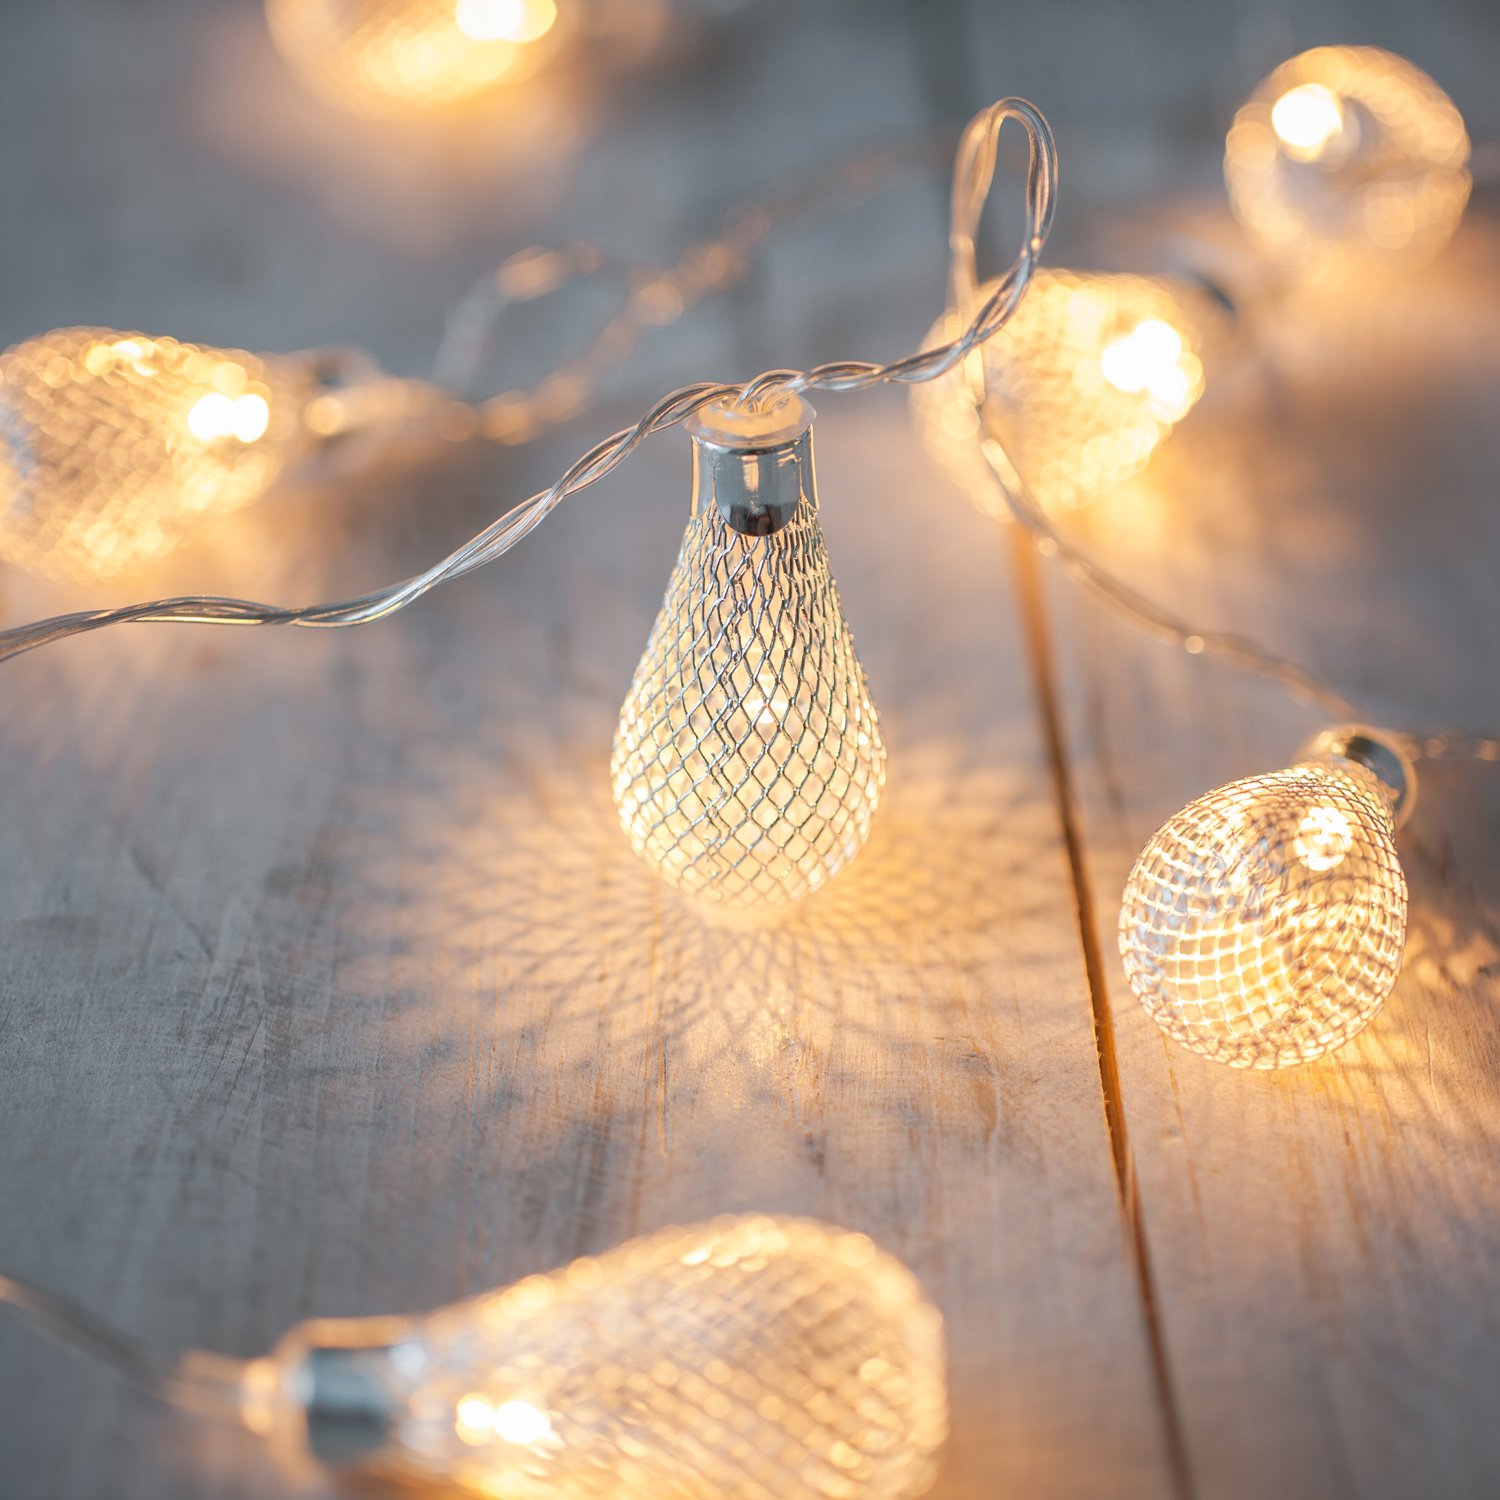 10 silver teardrop battery operated led fairy lights by lights4fun 10 silver teardrop battery operated led fairy lights by lights4fun amazon lighting mozeypictures Choice Image